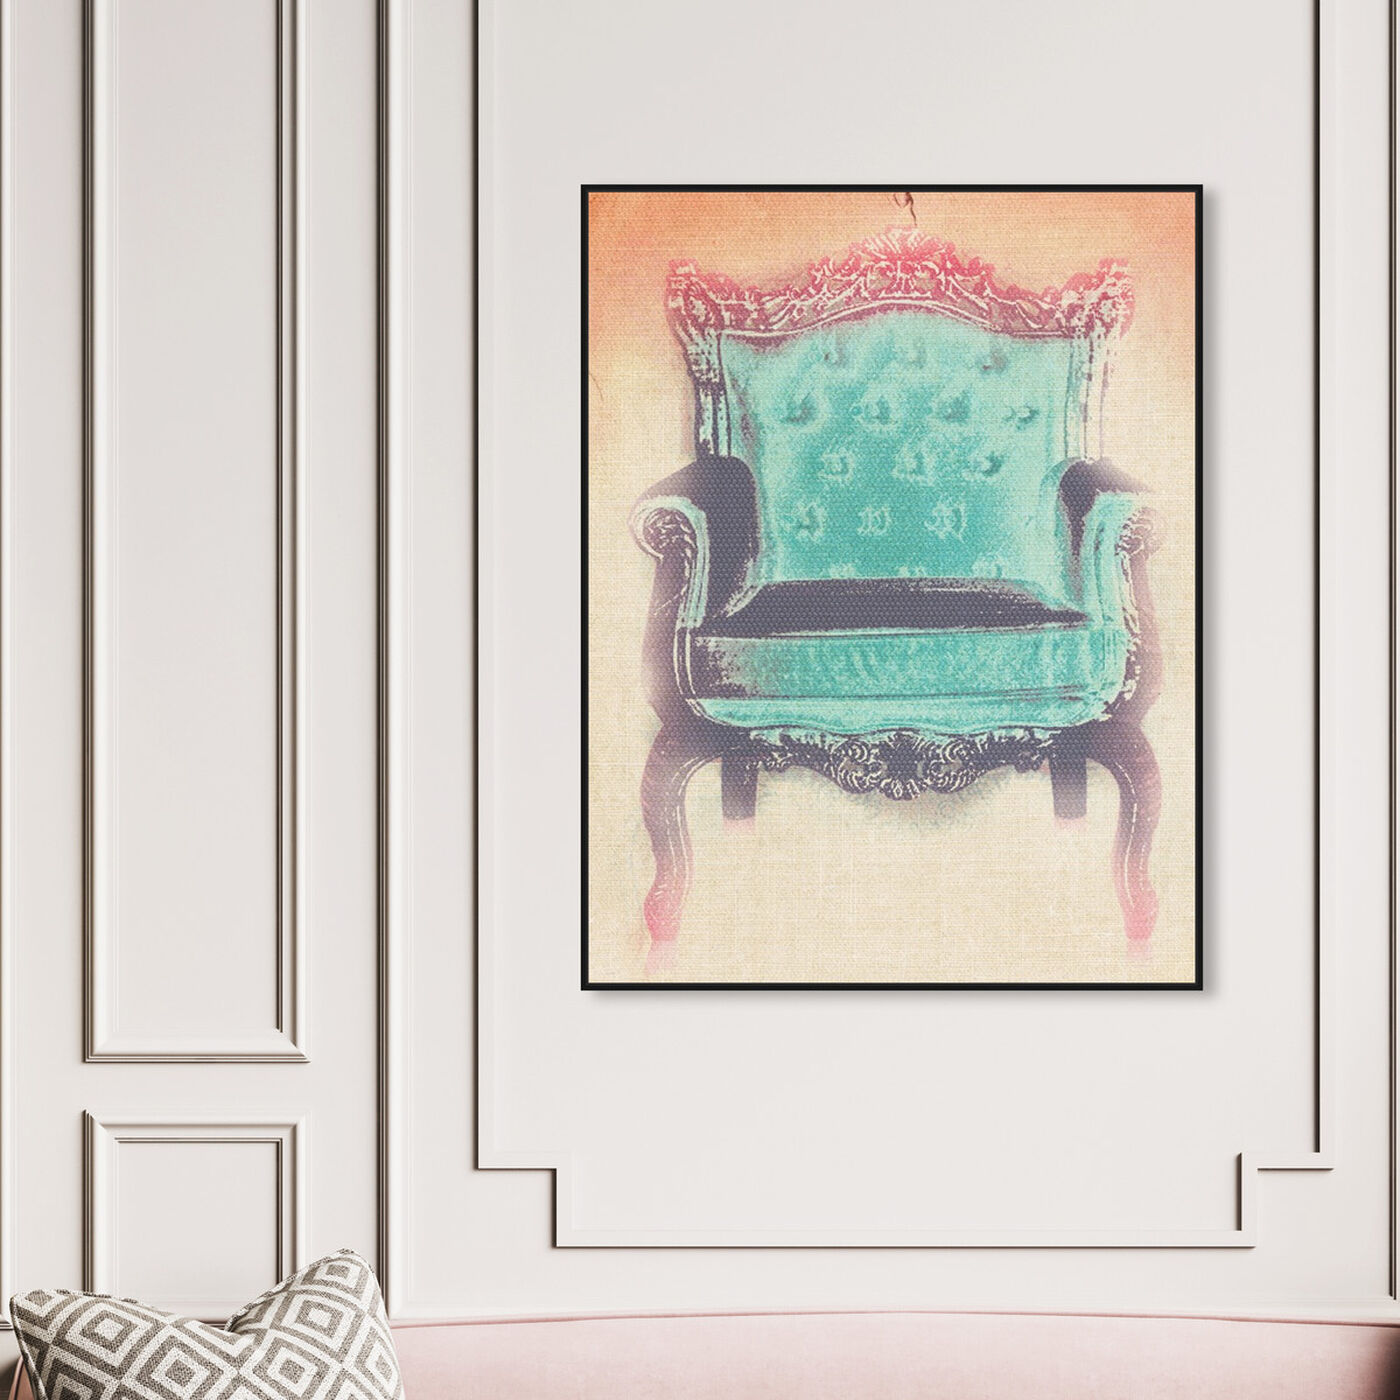 Hanging view of The Throne featuring fashion and glam and lifestyle art.